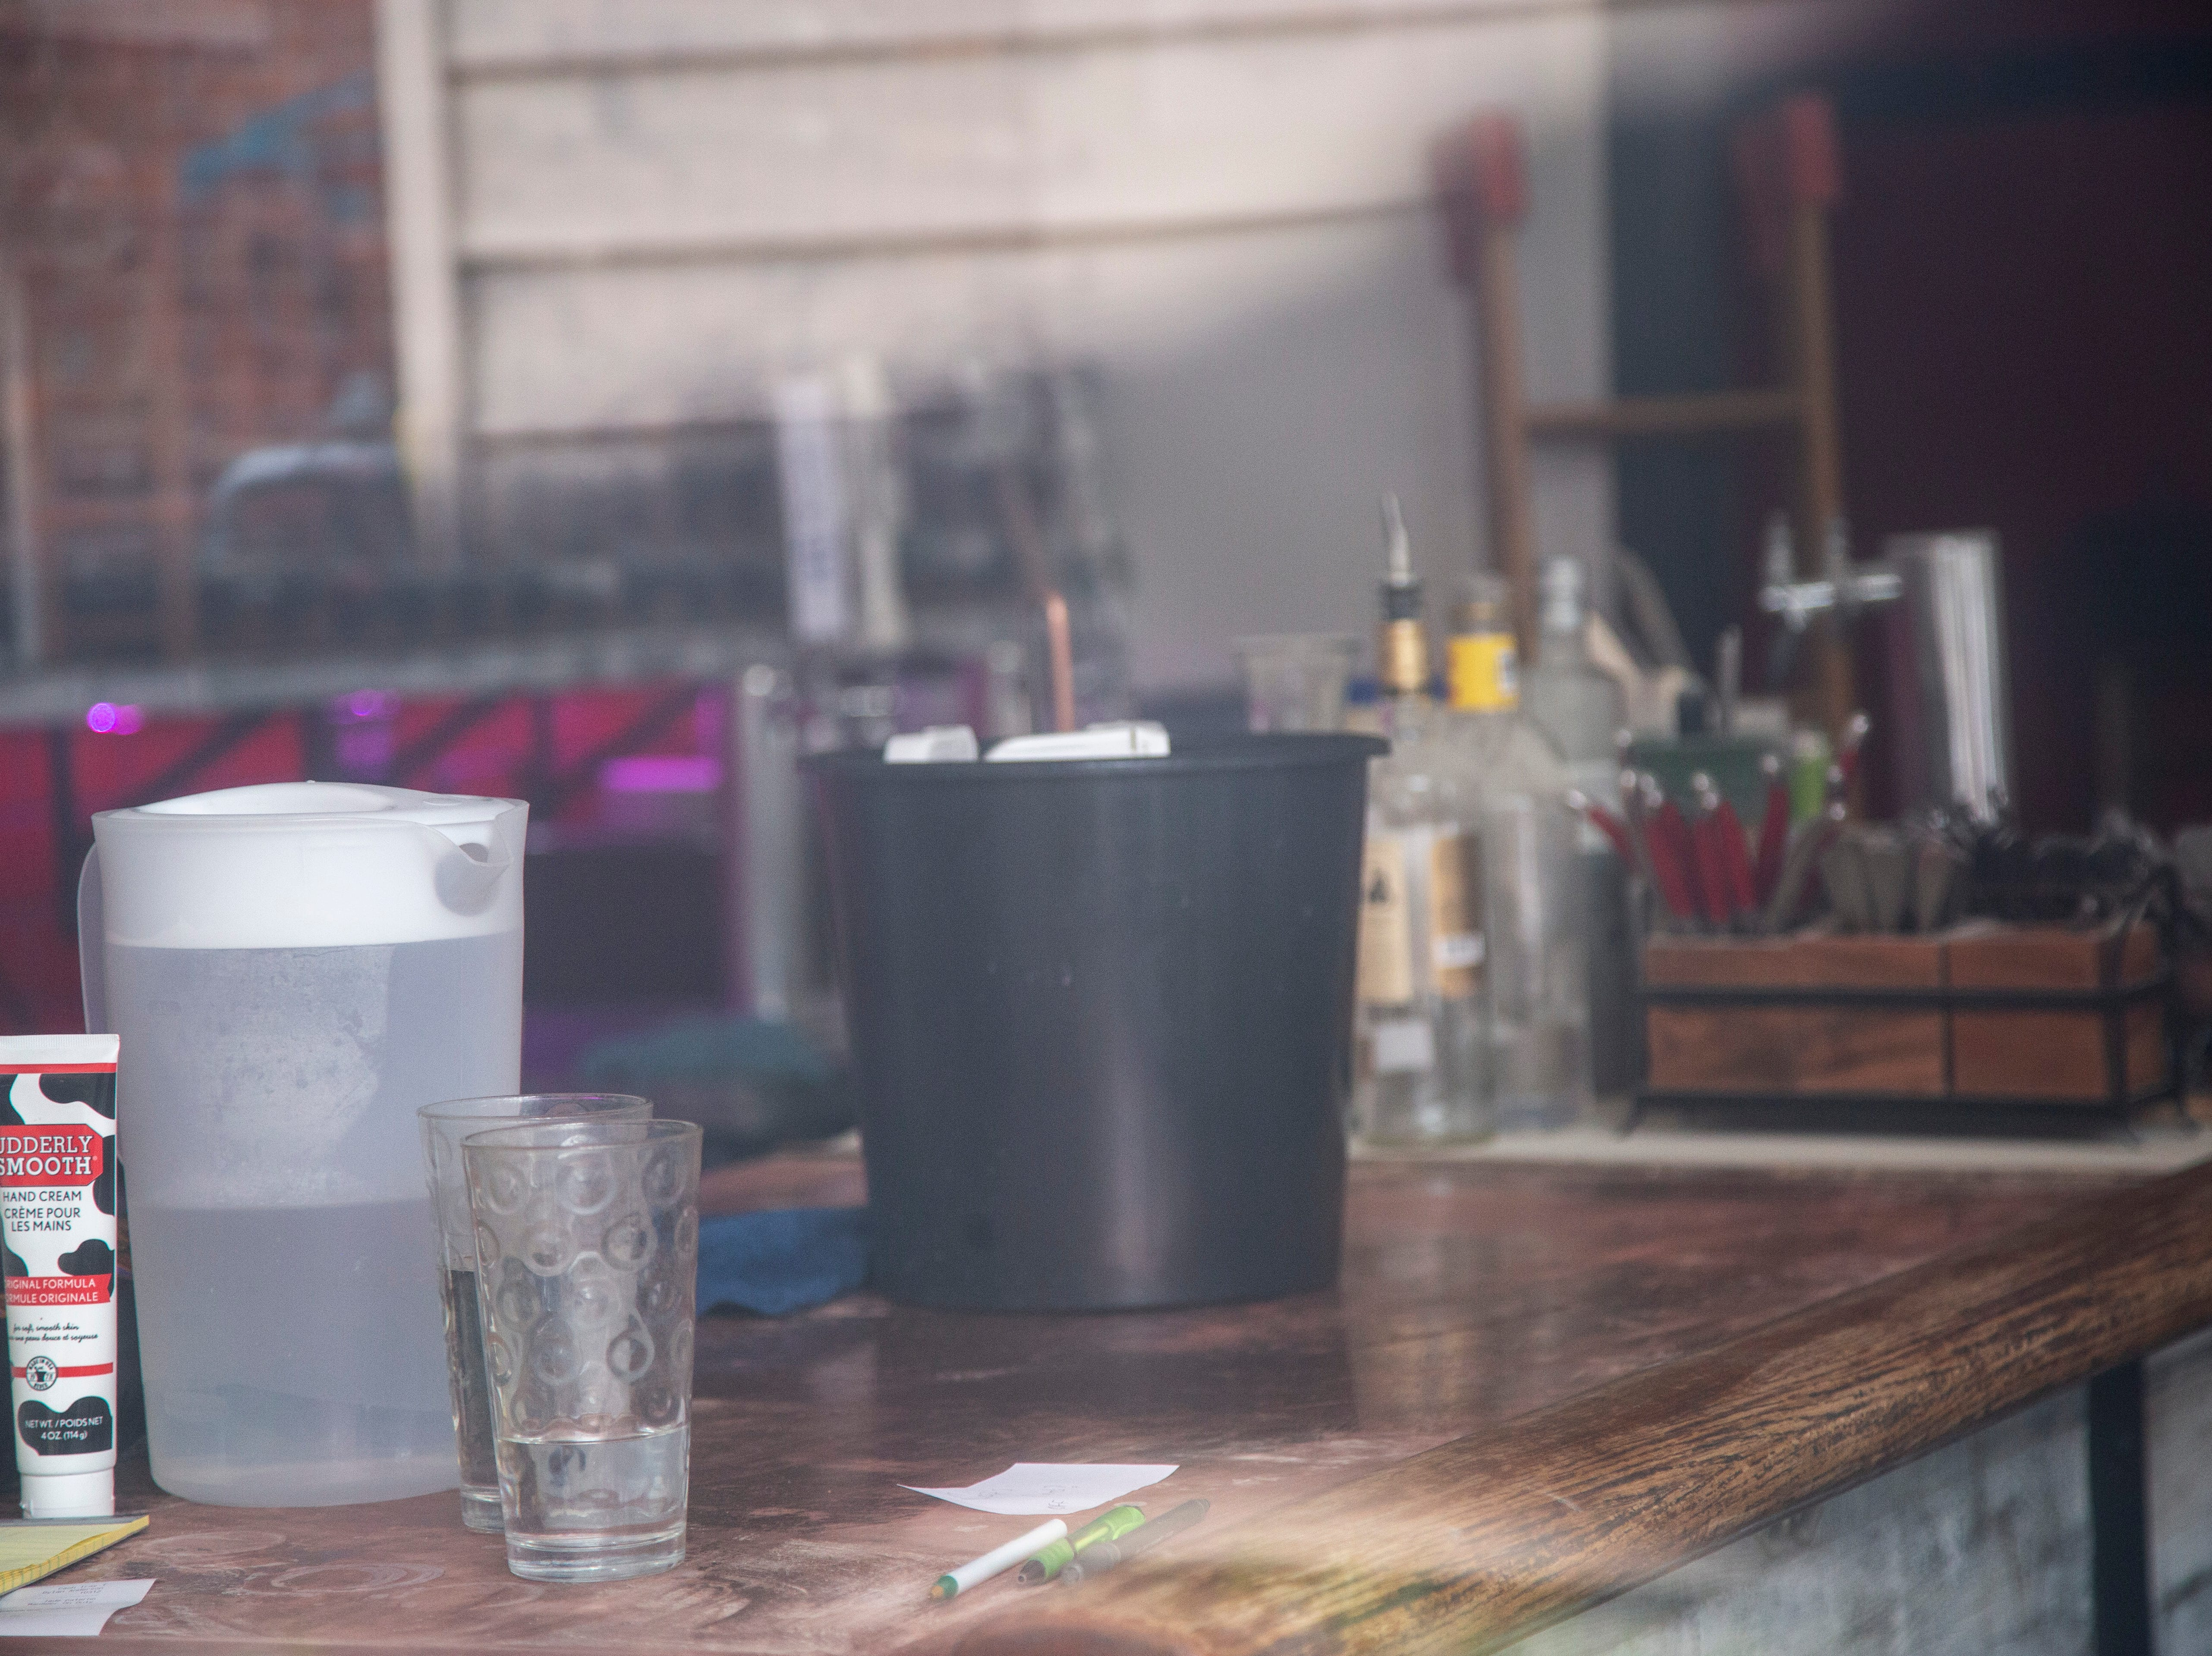 A half cleaned bar is surrounded by damage, Tuesday, May 14, 2019, at Linn Street Dive in Iowa City, Iowa.